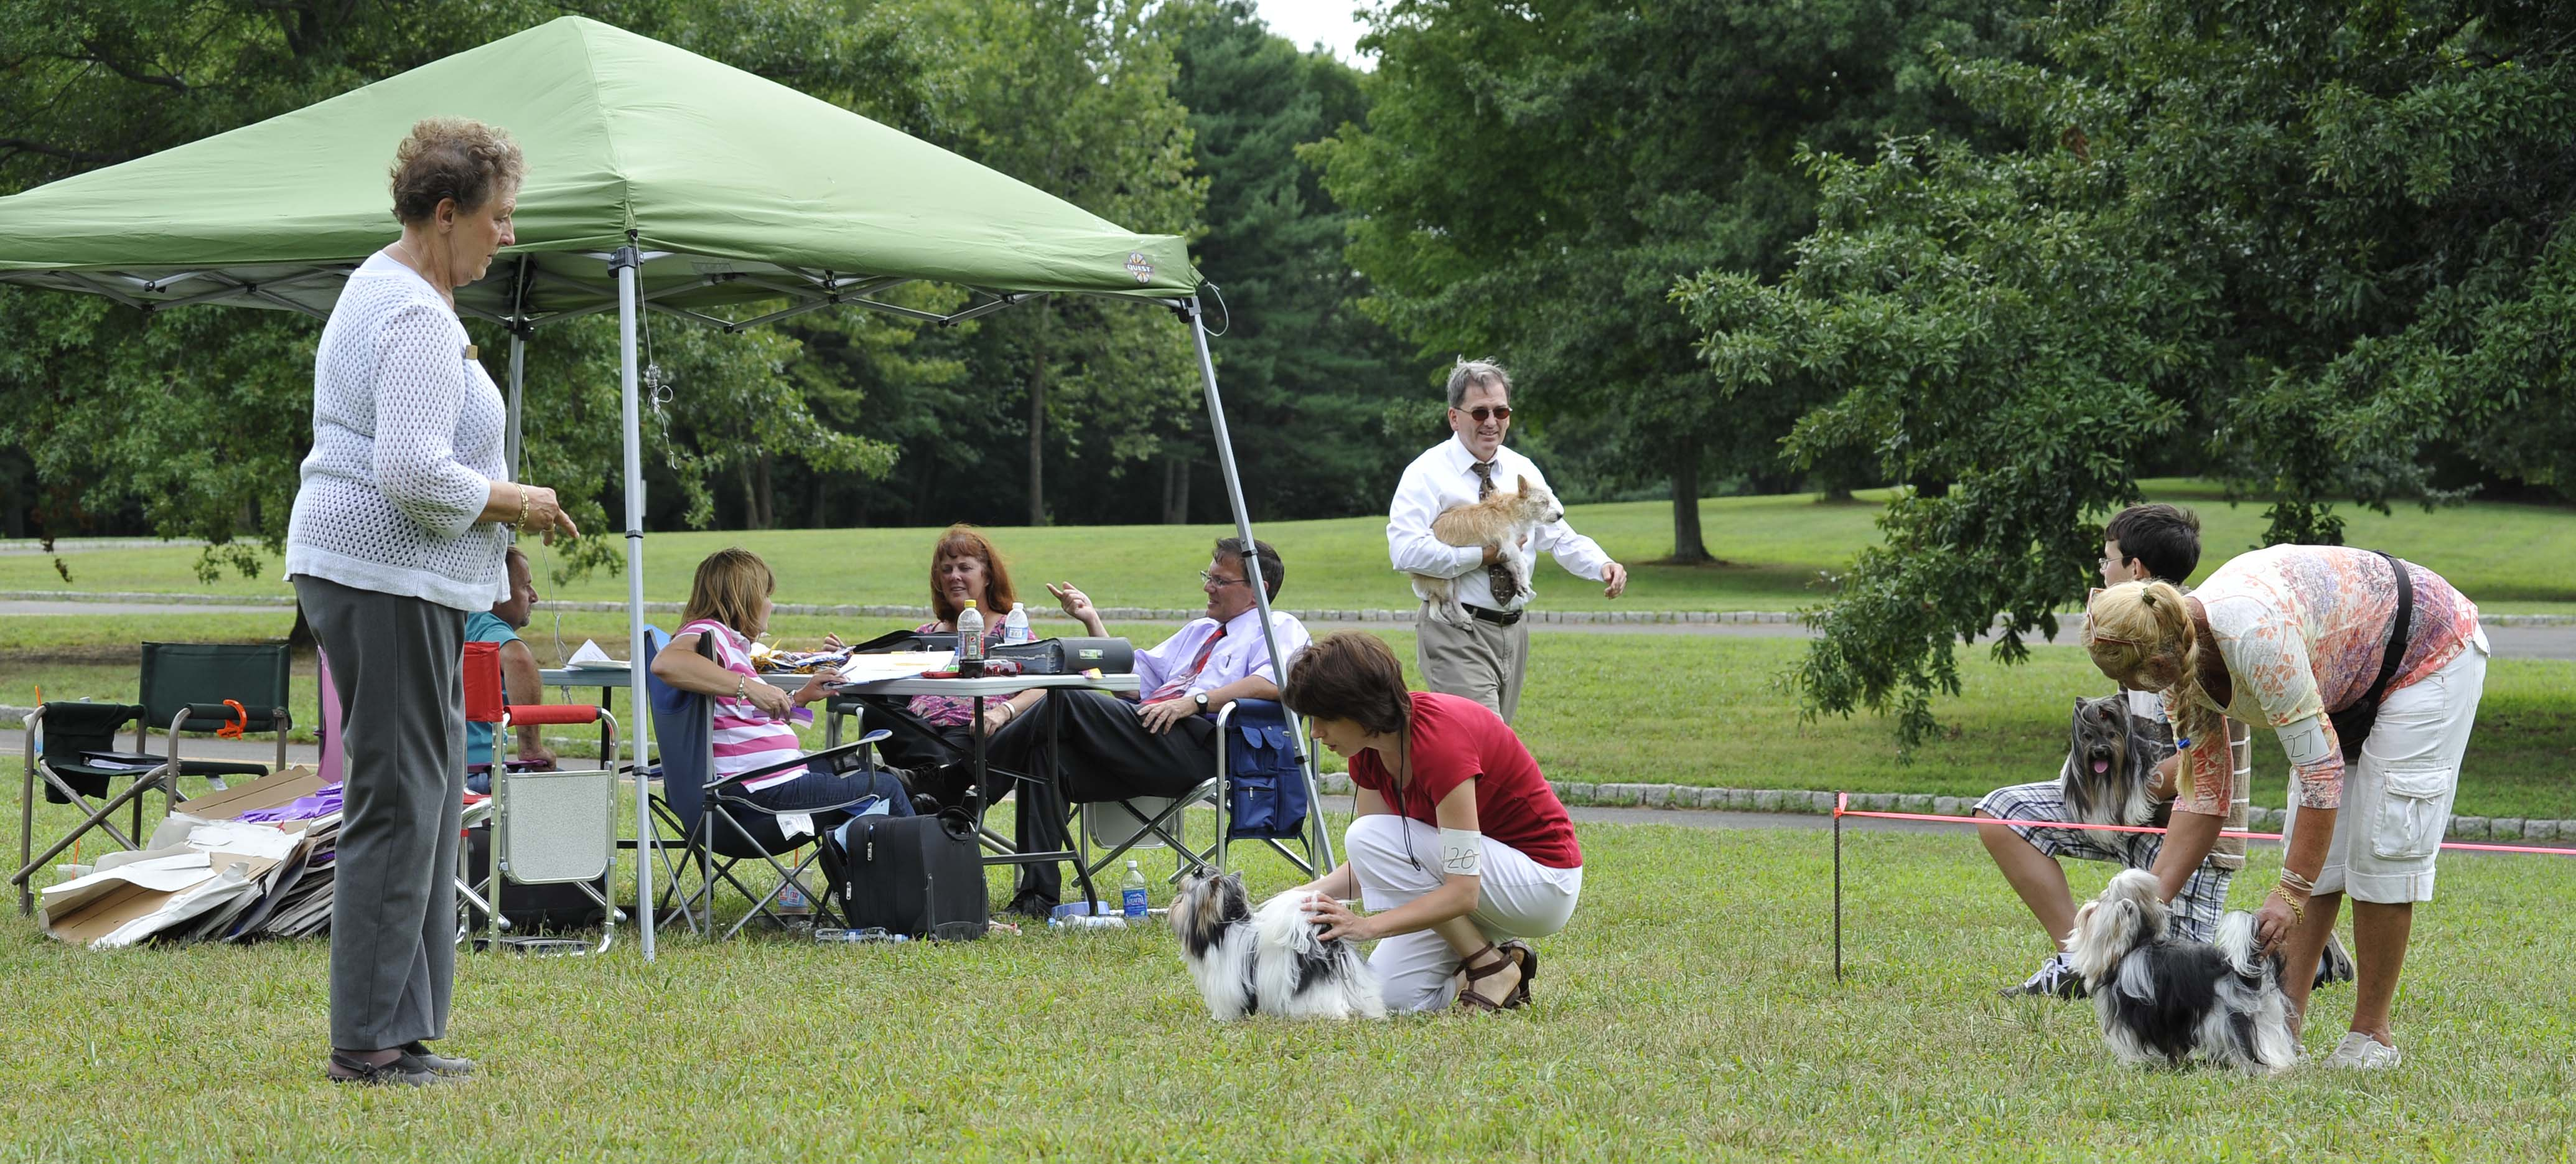 Ickc Dog Shows